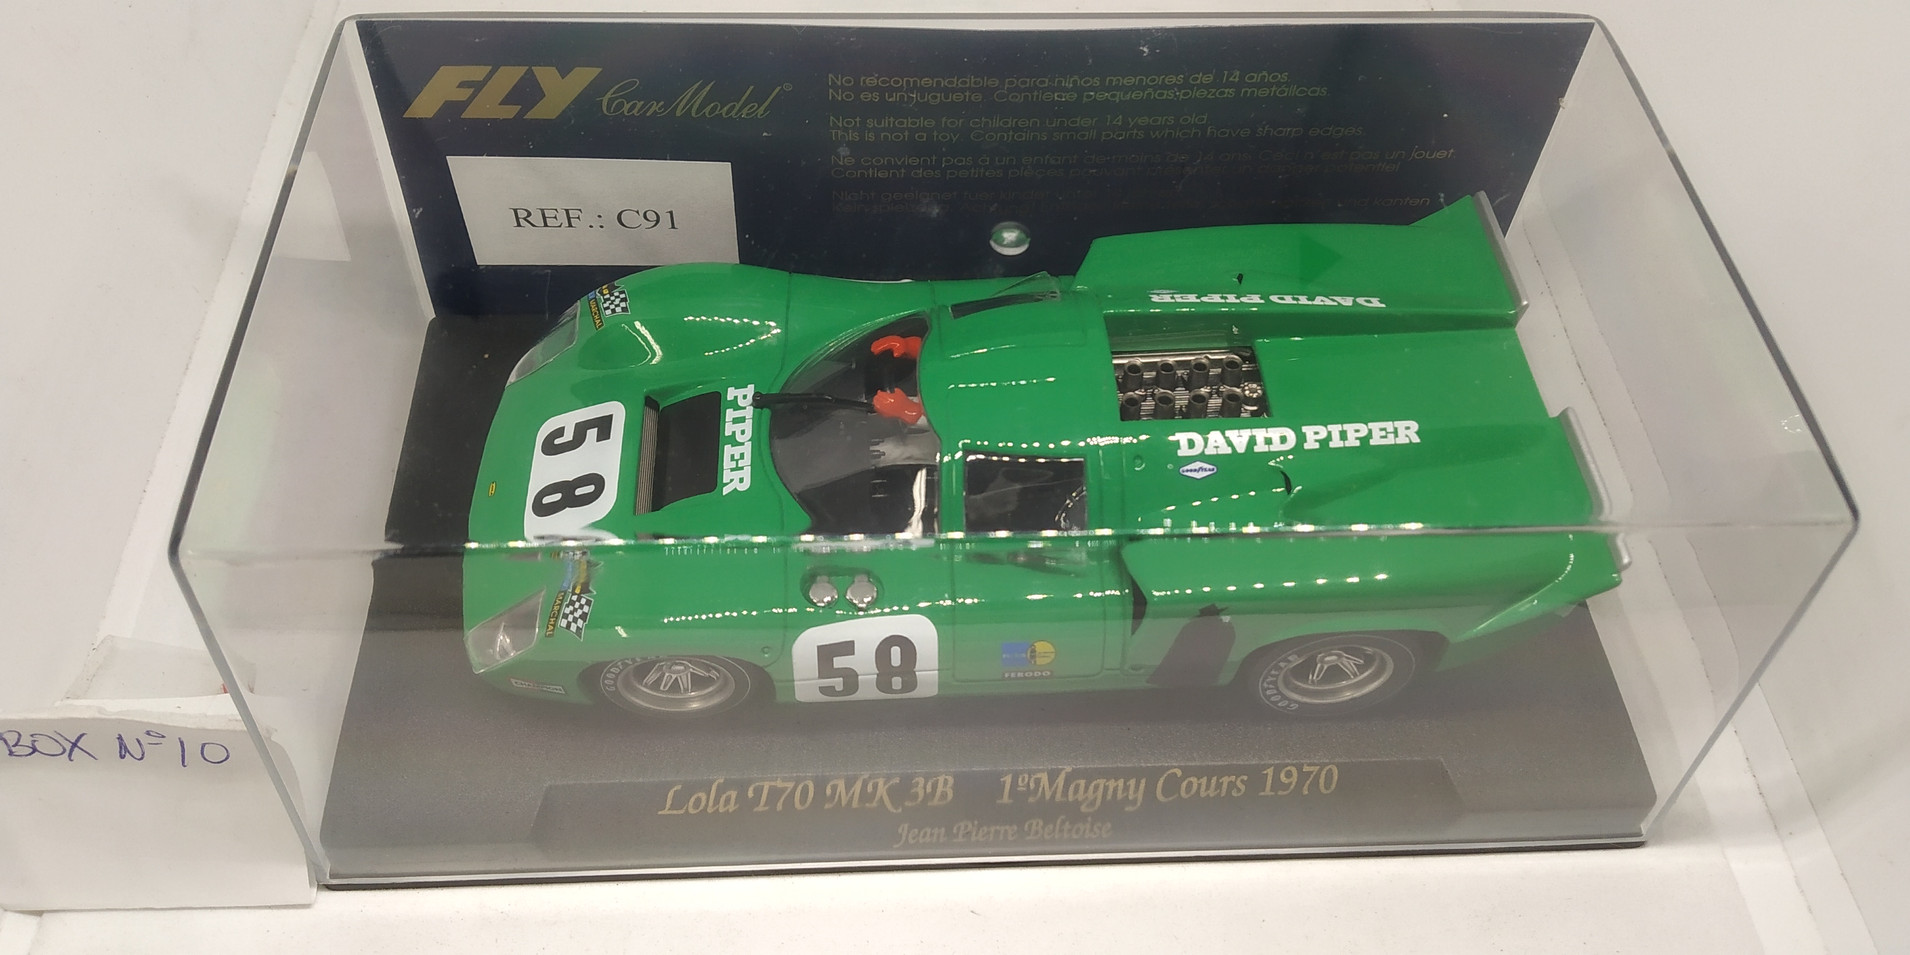 LOLA T70 MK3B 1ºMAGNY COURS 1970, REF. C91 FLY CAR MODEL